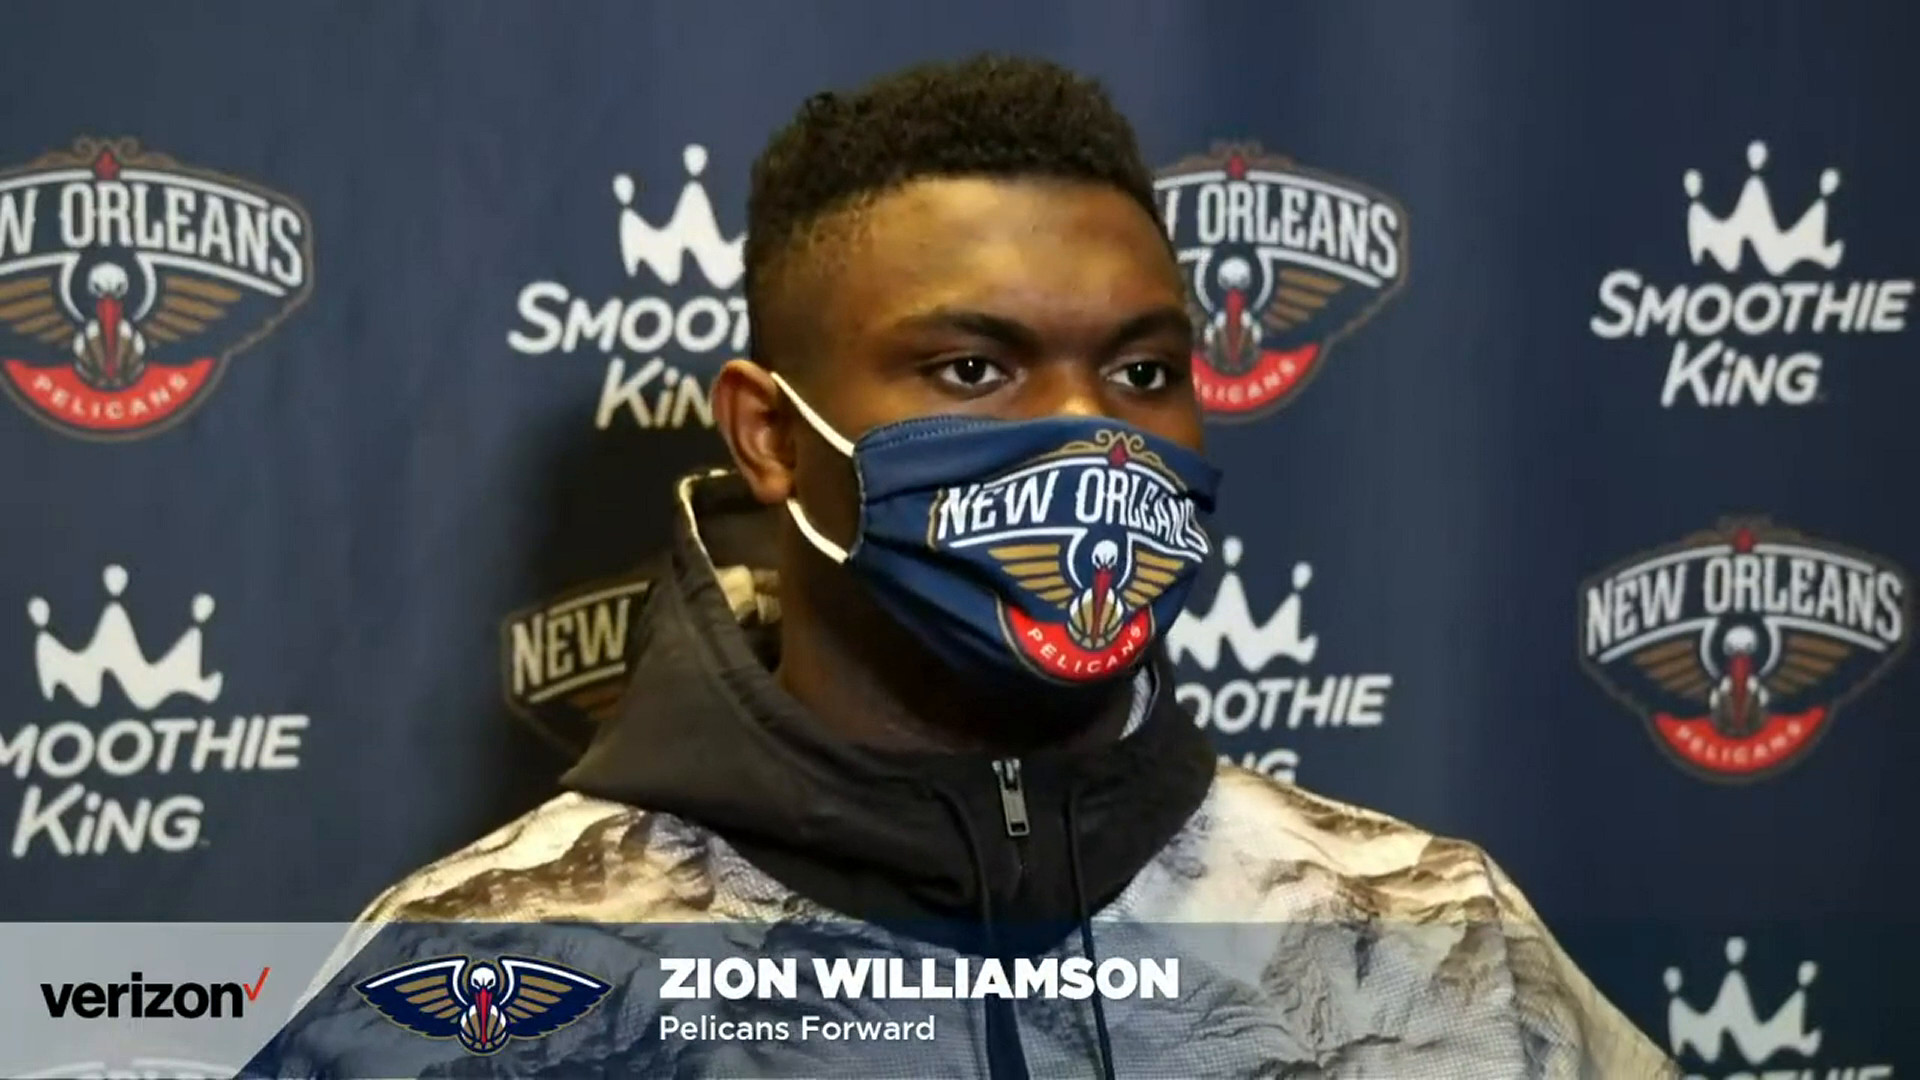 Pelicans-Bucks Postgame: Zion Williamson 2-25-21